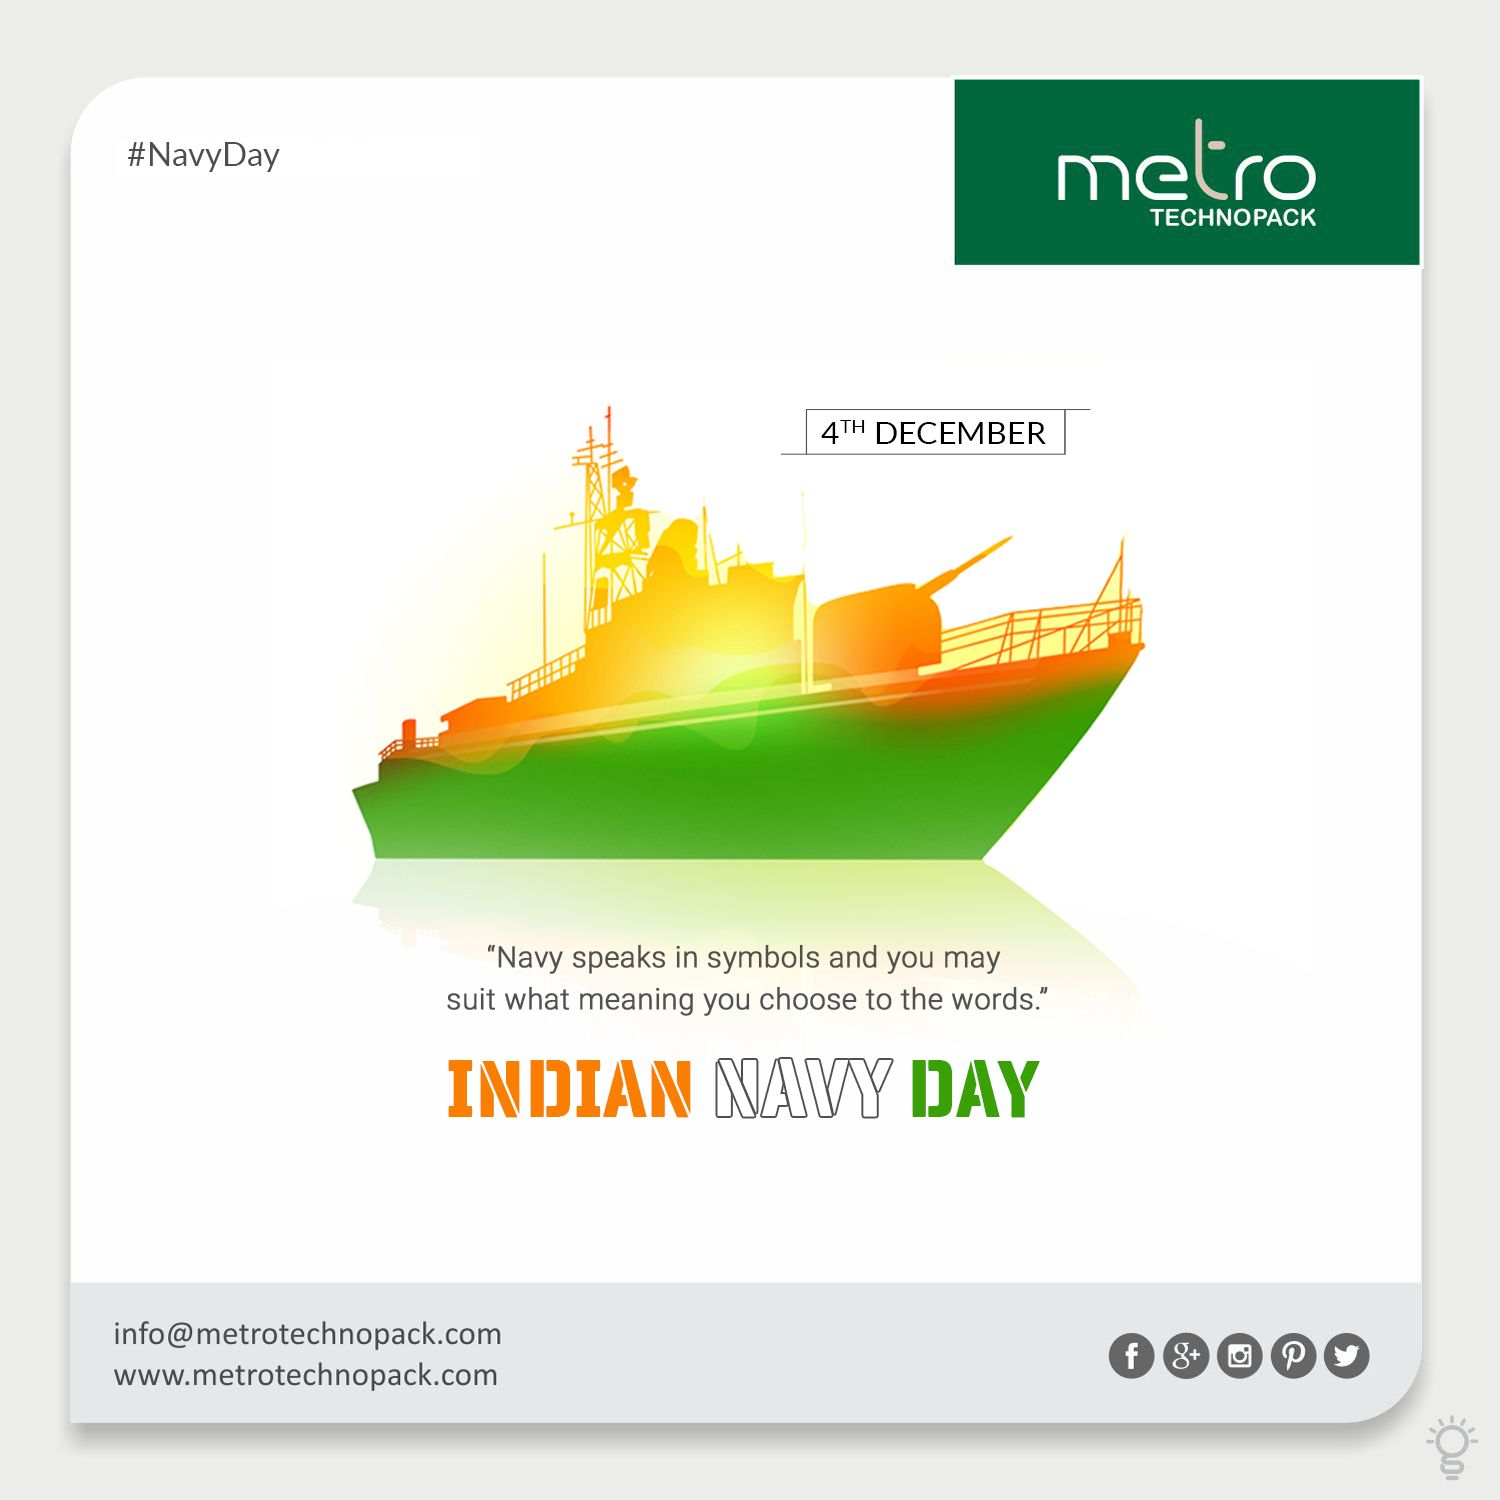 Navy Speaks In Symbols And You May Suit What Meaning You Choose To The Words Navyday Indiannavyday Navyd Indian Navy Day Navy Day Poster Background Design